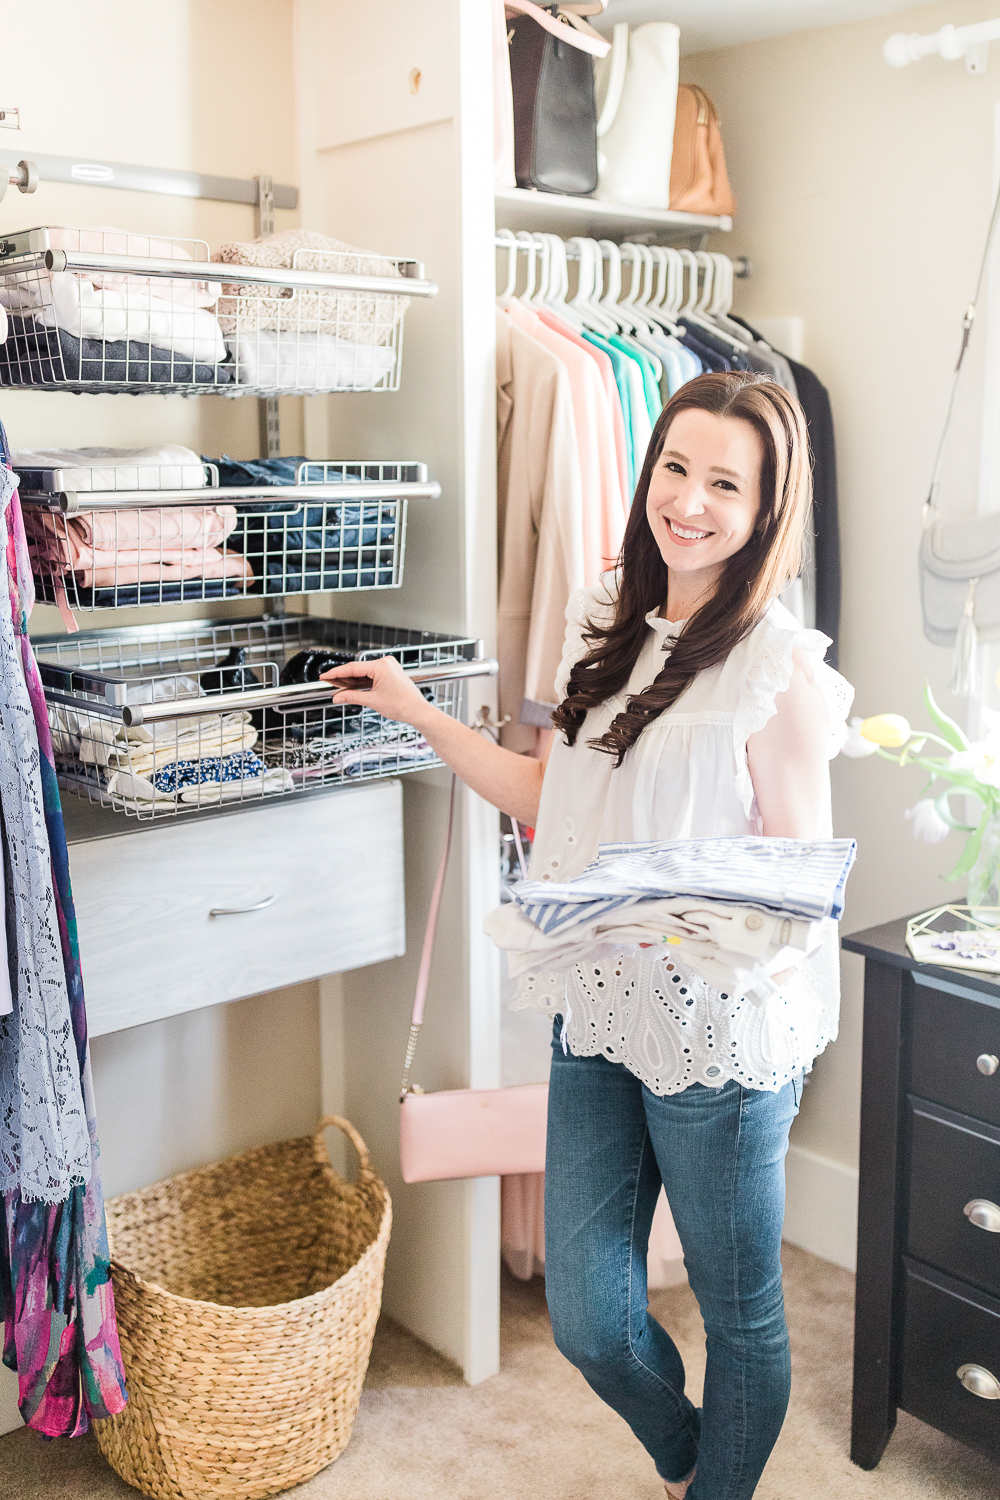 Rubbermaid FastTrack wire sliding baskets, How To: Refresh Your Closet with a Rubbermaid FastTrack Closet System by Stephanie Ziajka from the popular southern lifestyle blog Diary of a Debutante, Rubbermaid FastTrack Closet Organization System review and install, affordable custom closet system